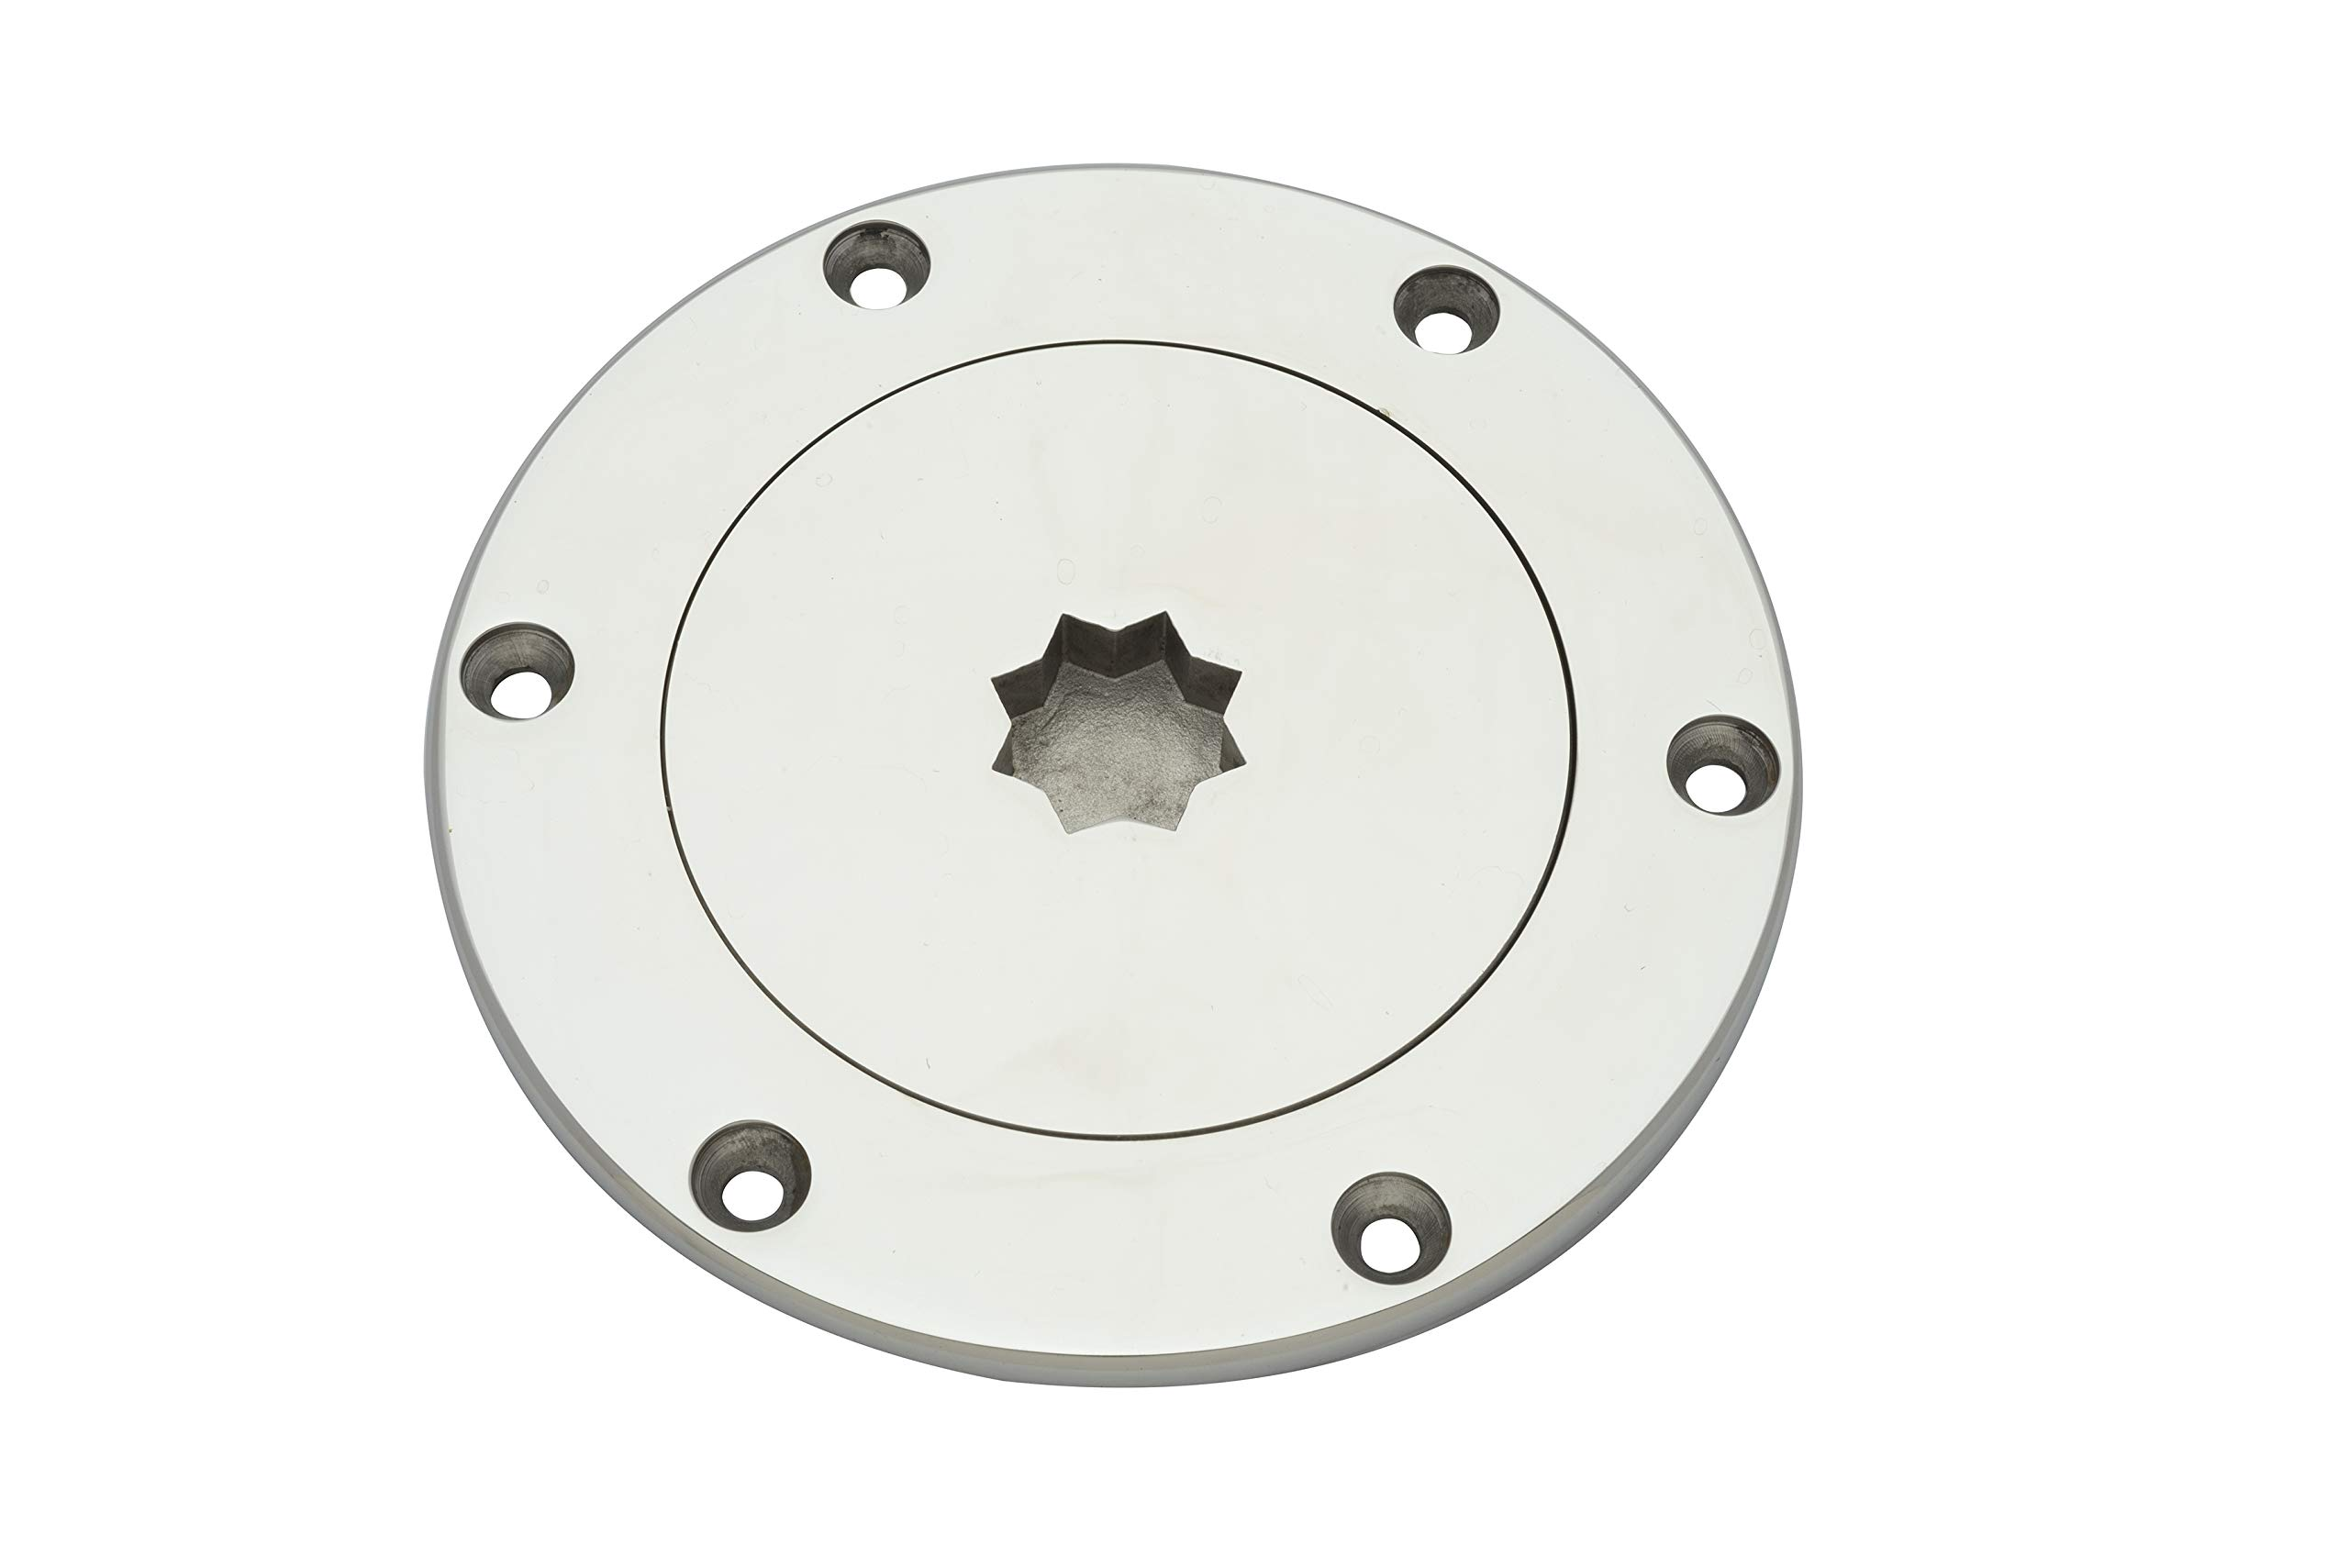 Buchan Marine Deck Plate 5'' Stainless Steel with Star Pattern (5) by Buchan Marine